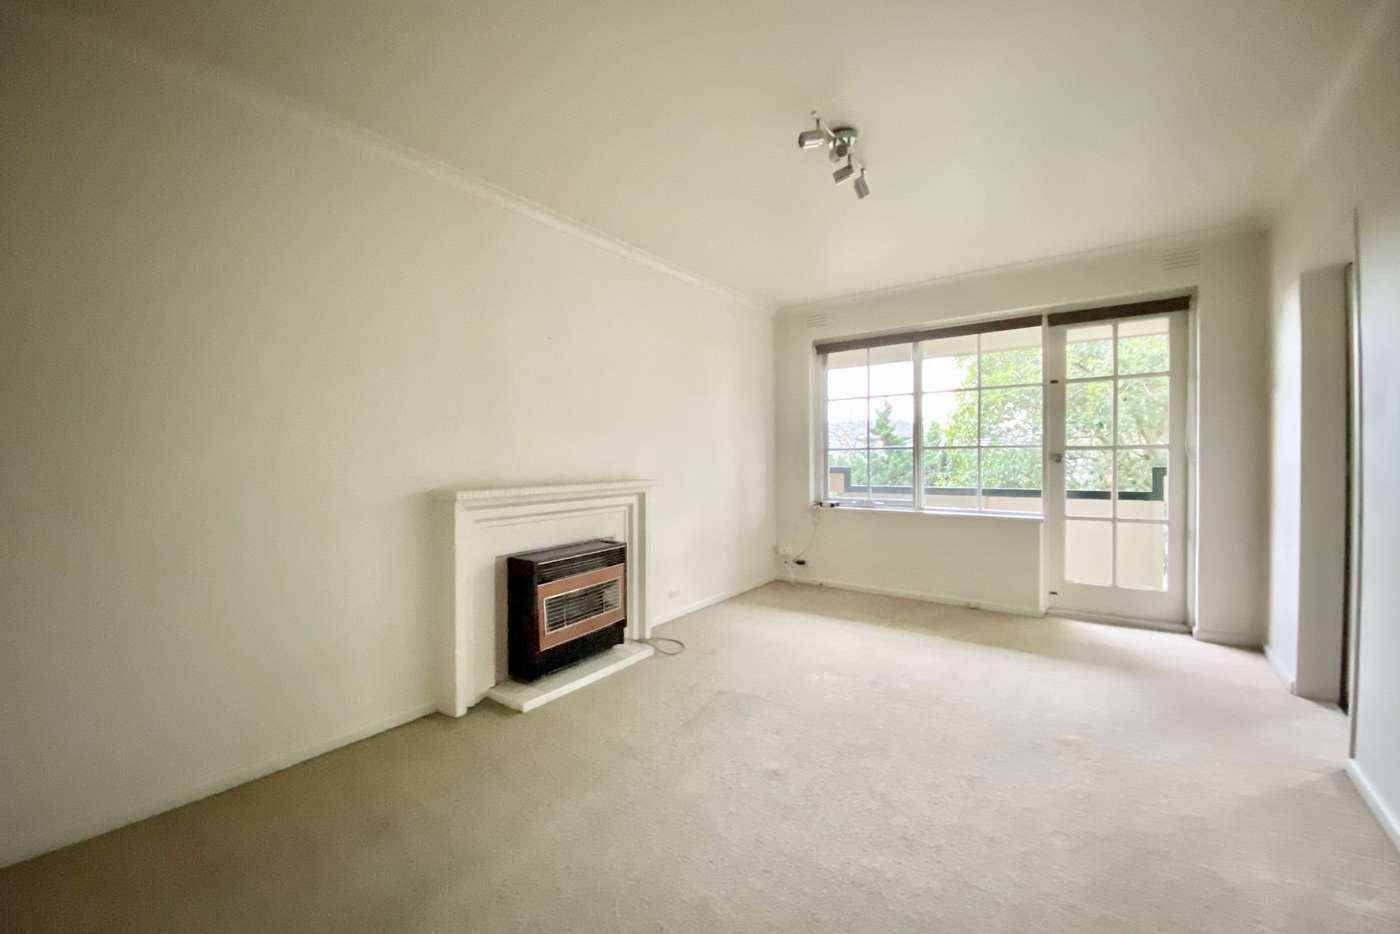 Fifth view of Homely apartment listing, 11/1015 Glenhuntly Road, Caulfield VIC 3162